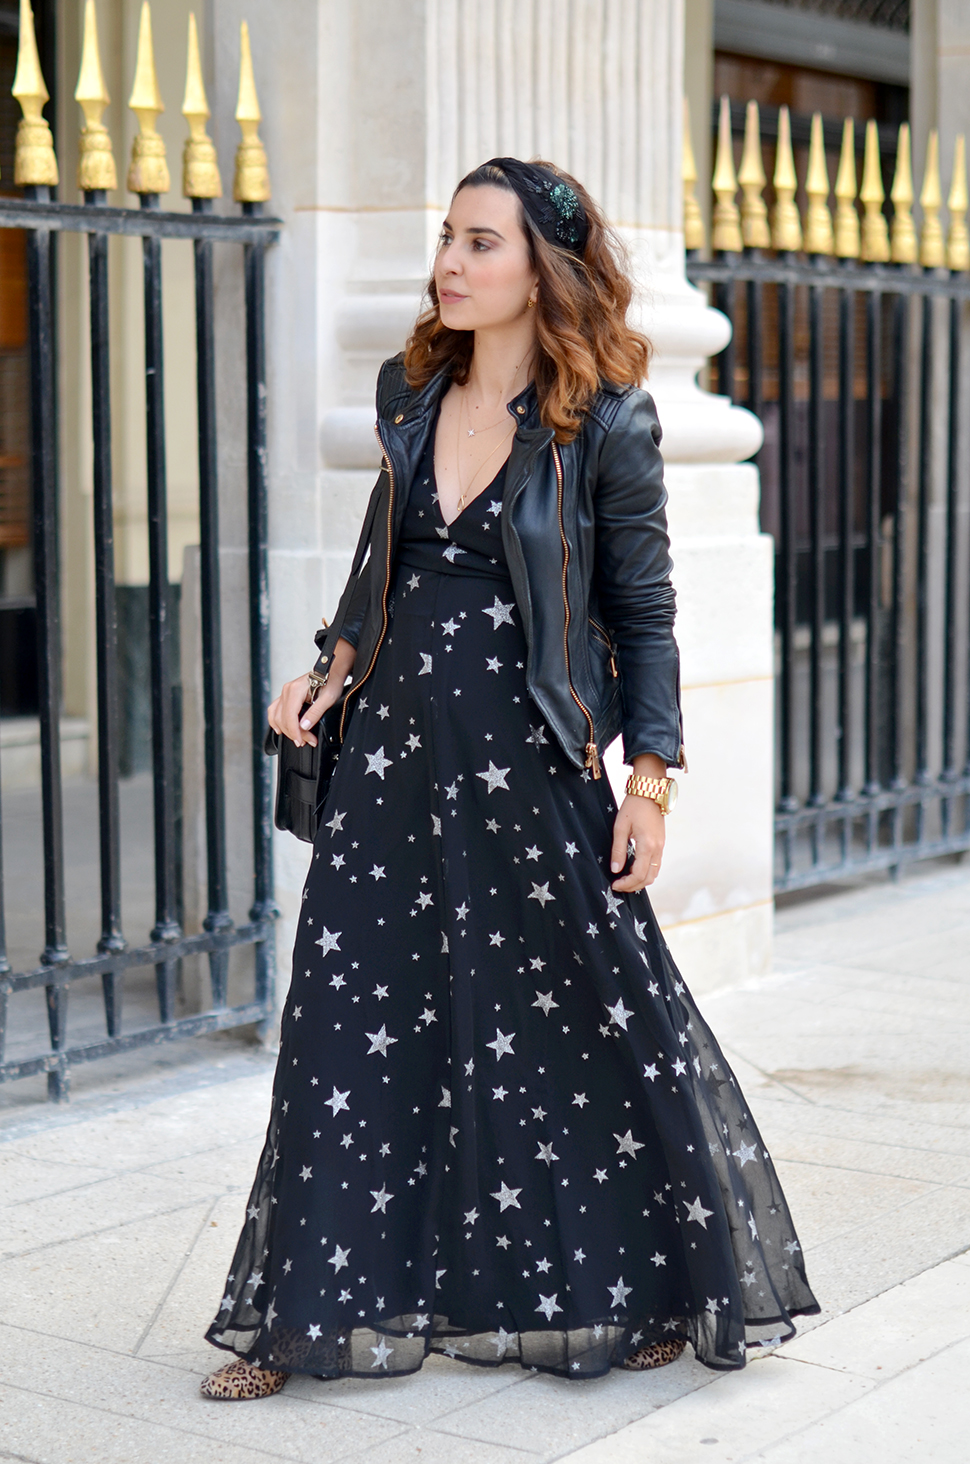 Helloitsvalentine_stars_dress_9